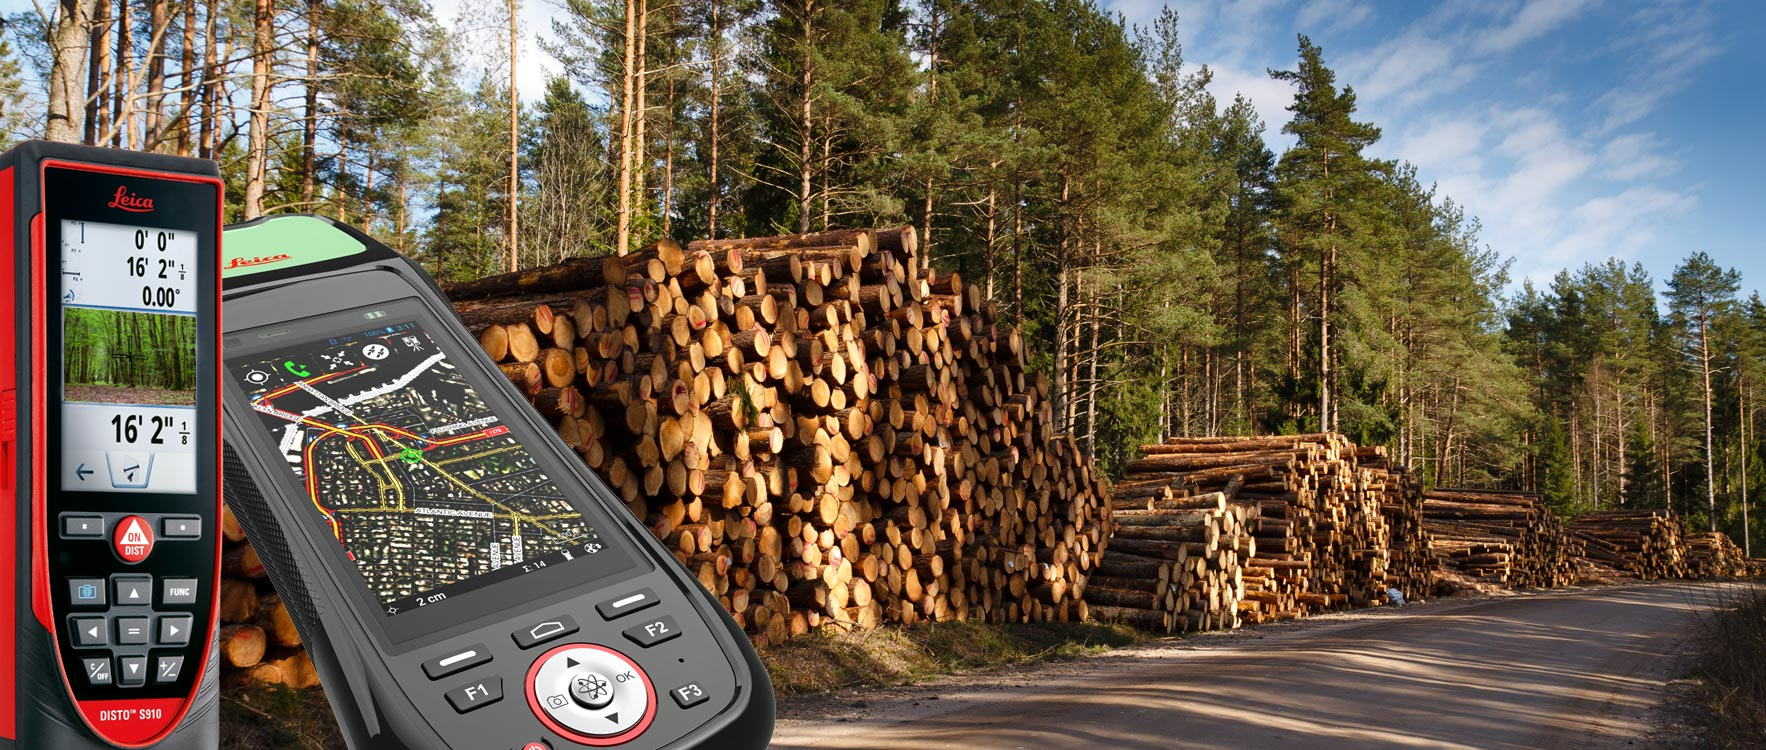 Leica Geosystems Forestry Solutions - Measure Existing Assets